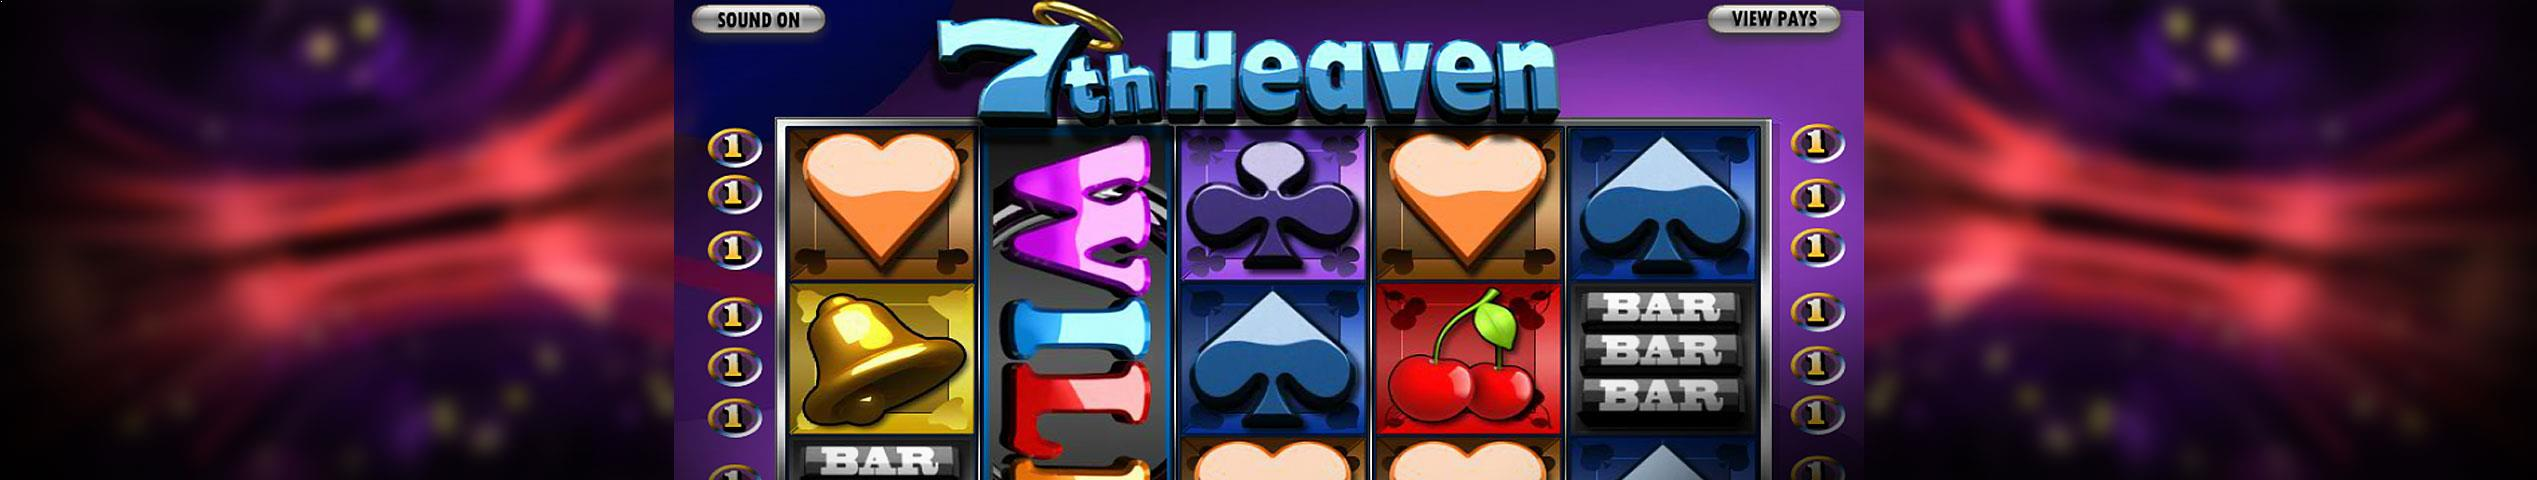 7th Heaven Multa Baft jocuri slot slider Betsoft